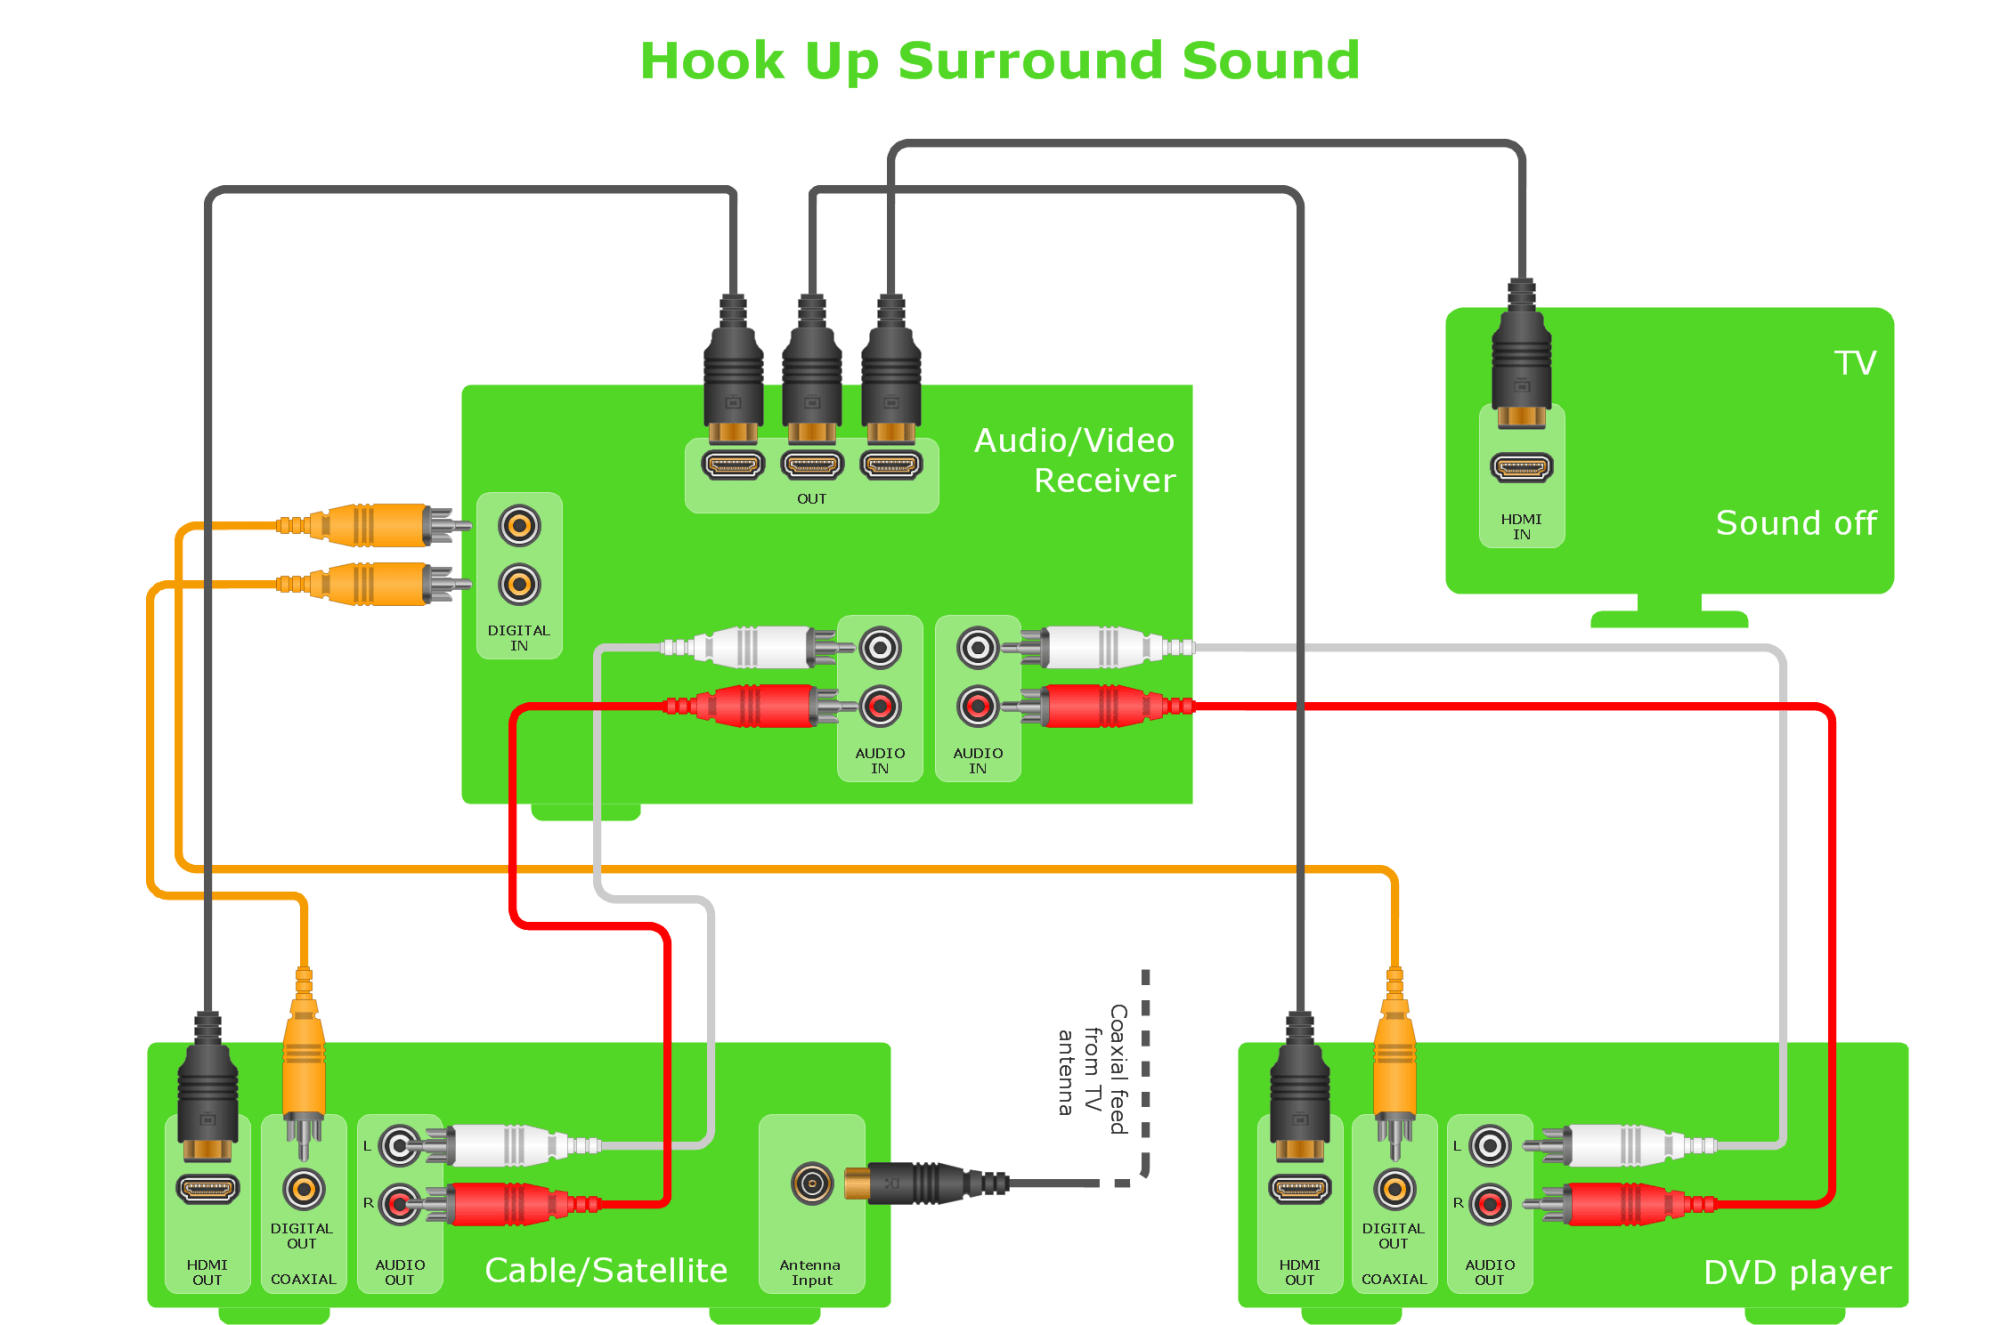 hight resolution of hookup diagram home entertainment system with surround sound